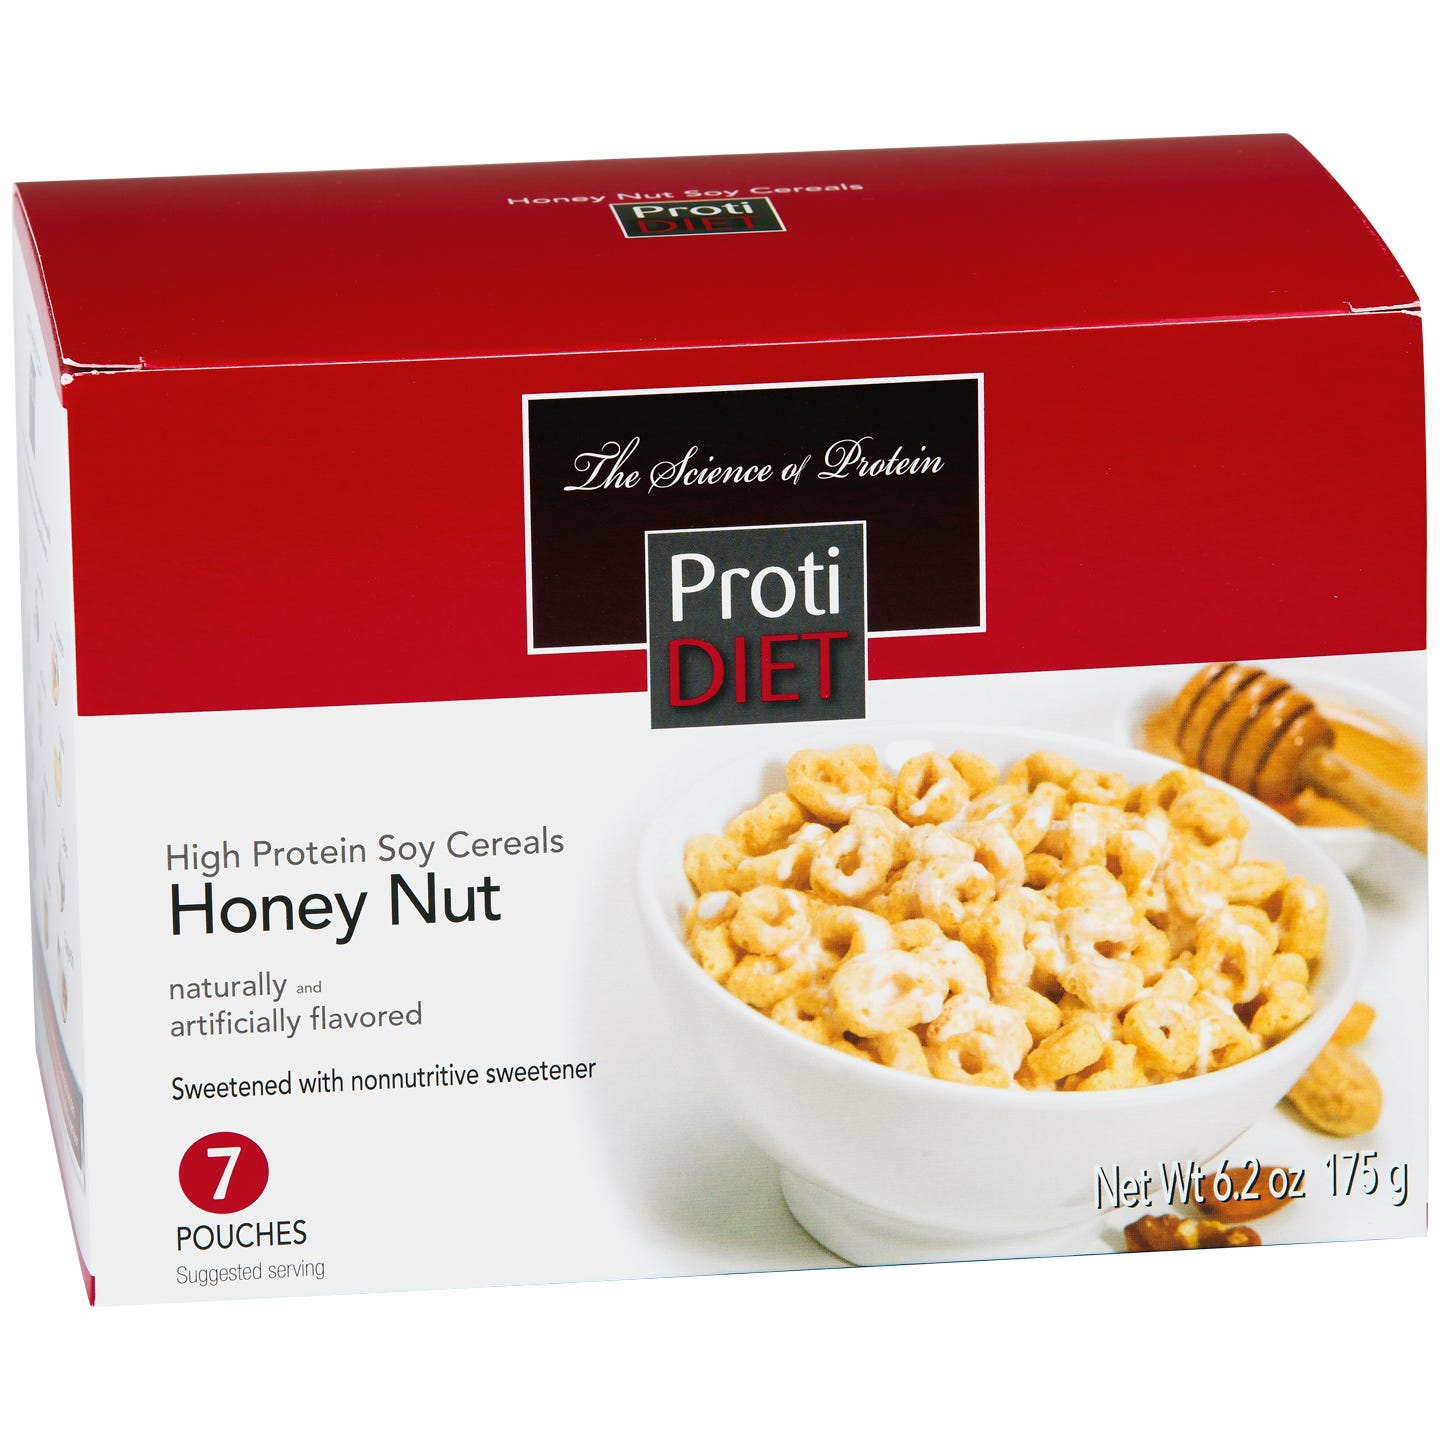 High Protein Soy Cereals Honey Nut (7 ct) - ProtiDiet - Rapid Diet Weight Loss Products Shop